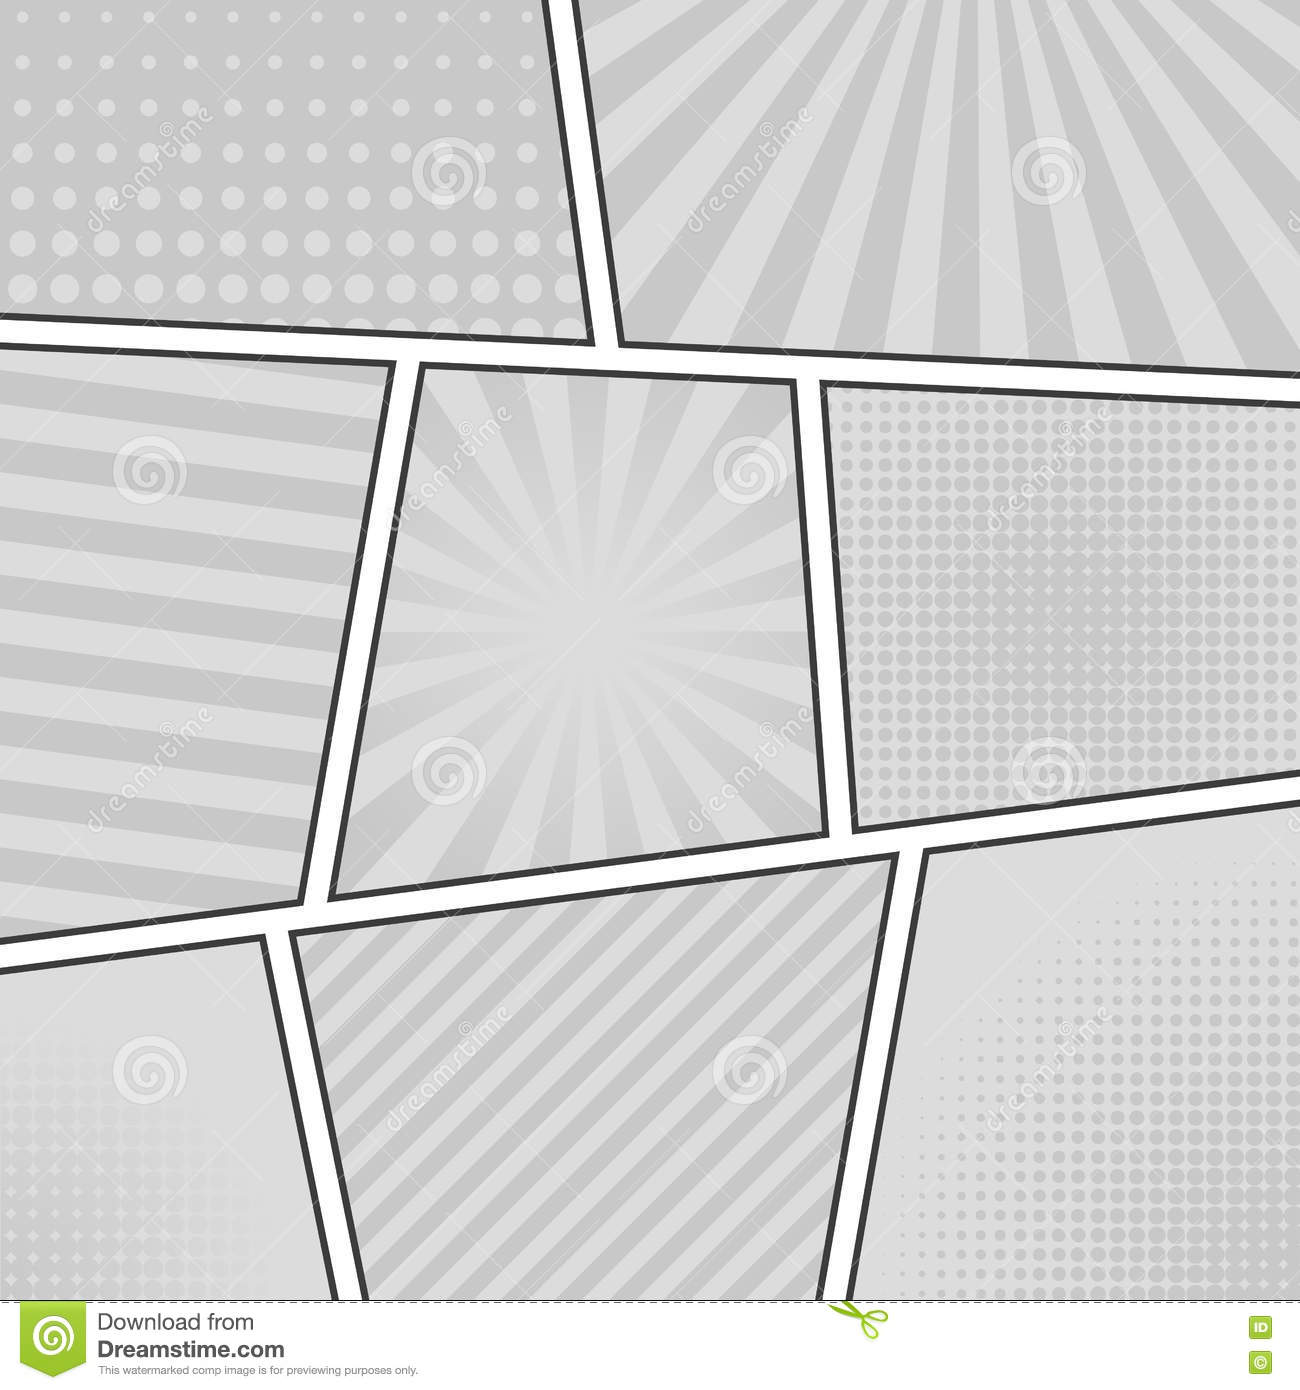 Comic Book Background Stock Vector Illustration Of Blank 74423903